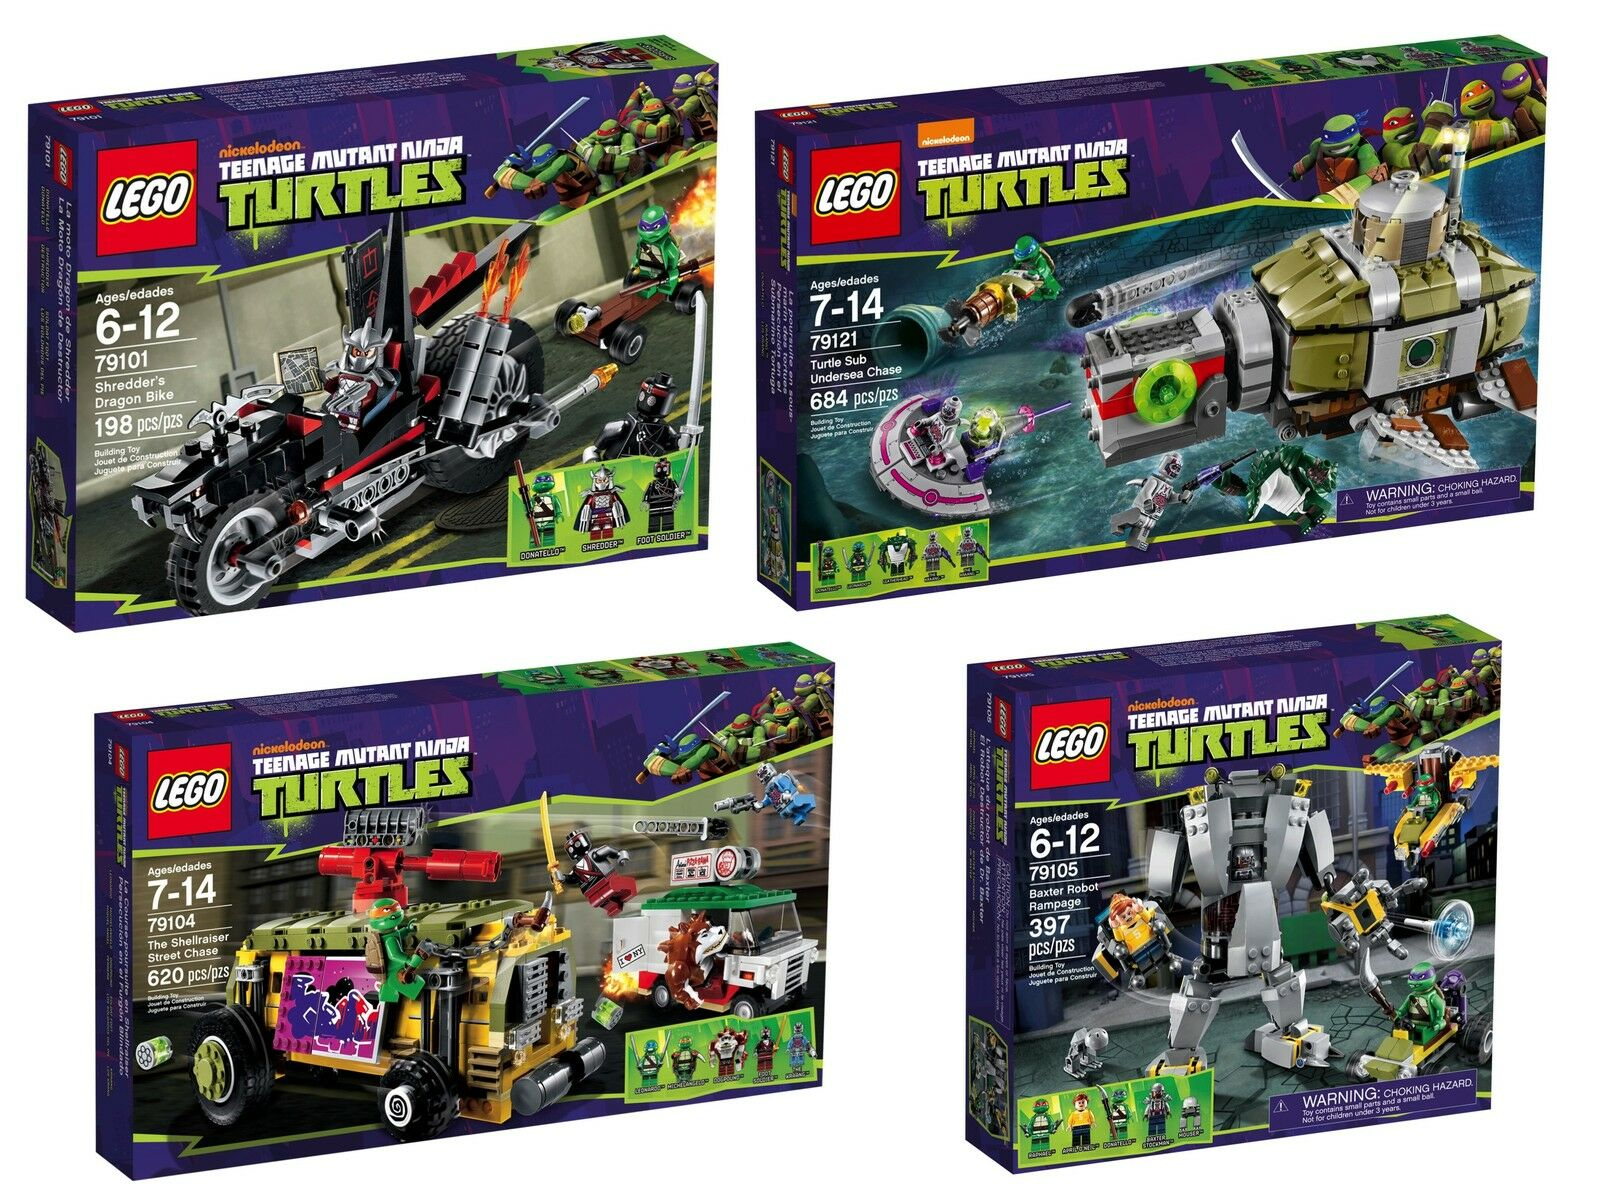 79101791047910579115791167911779121 Turtles ® Lego Ninja Teenage TlKJF1u3c